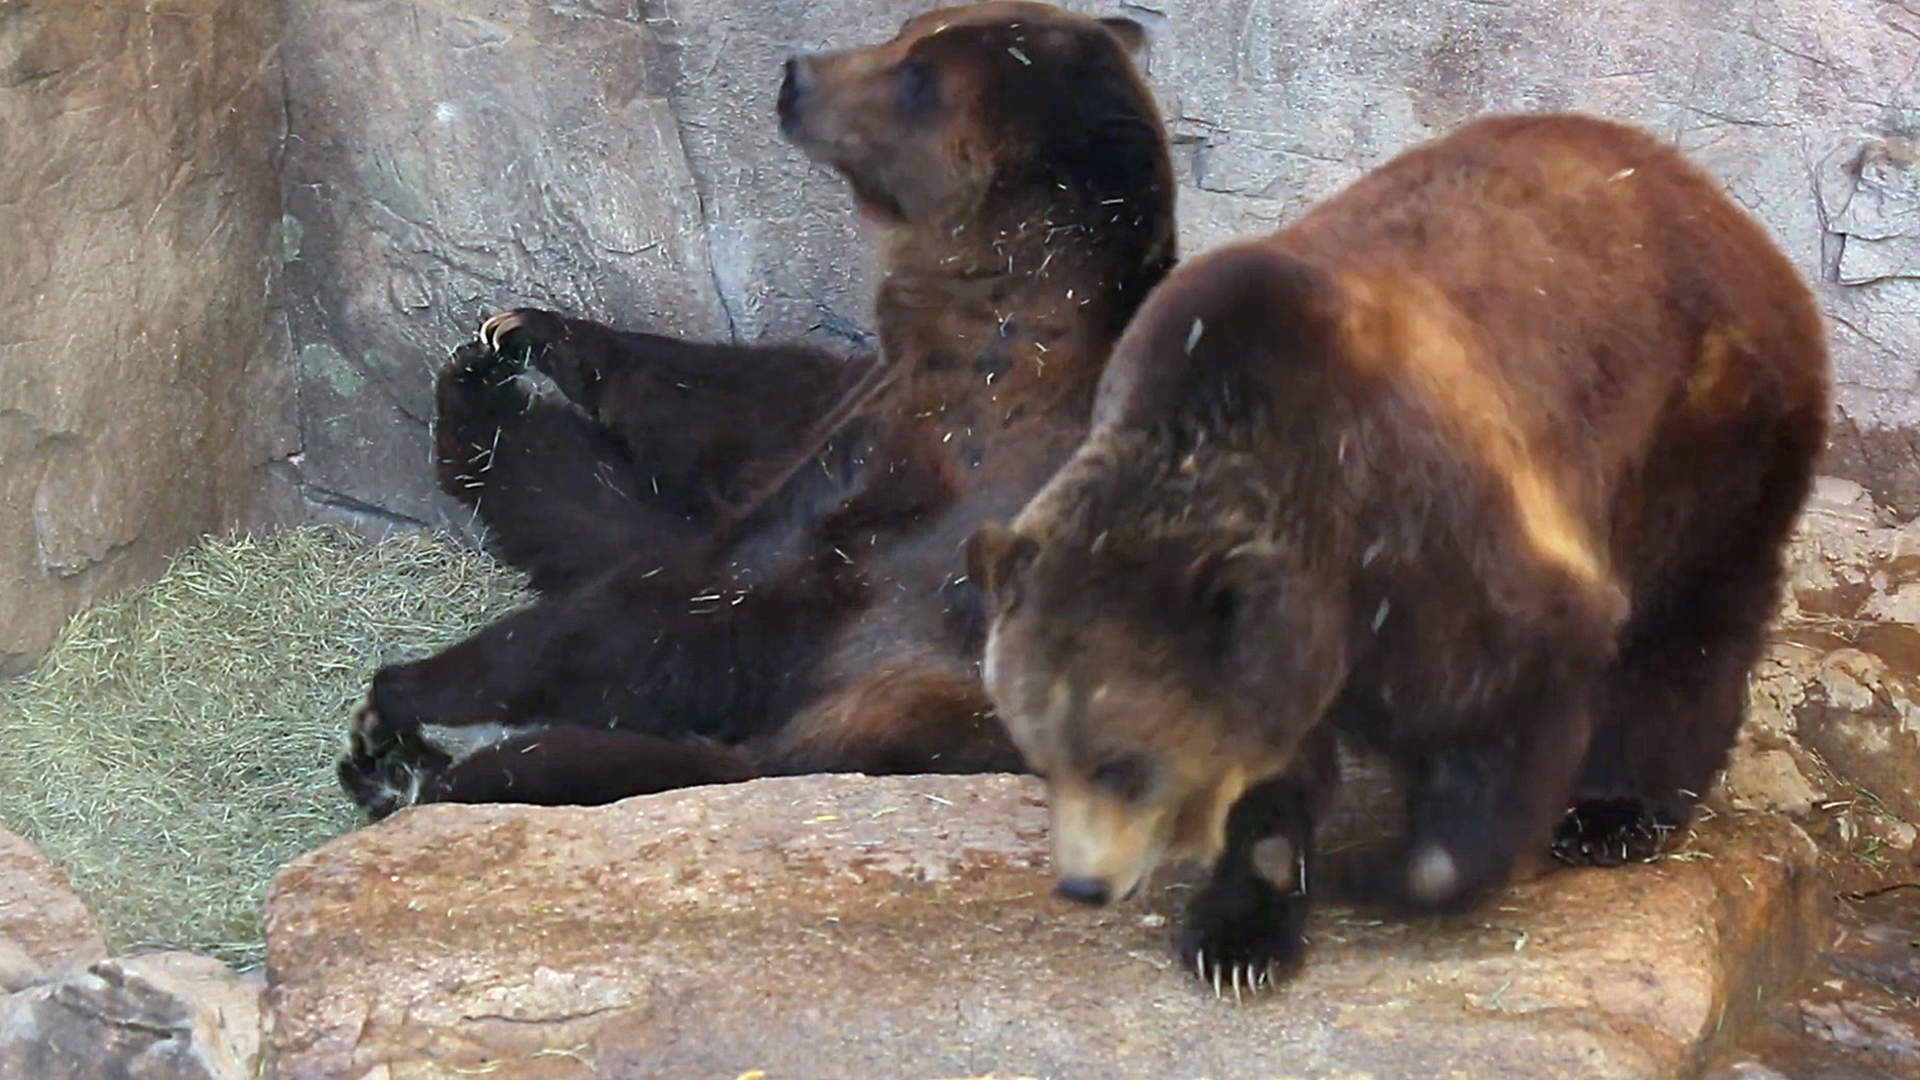 VIDEO: Not So Grizzly: Bears With A Spring On Their Step After Winter Snooze